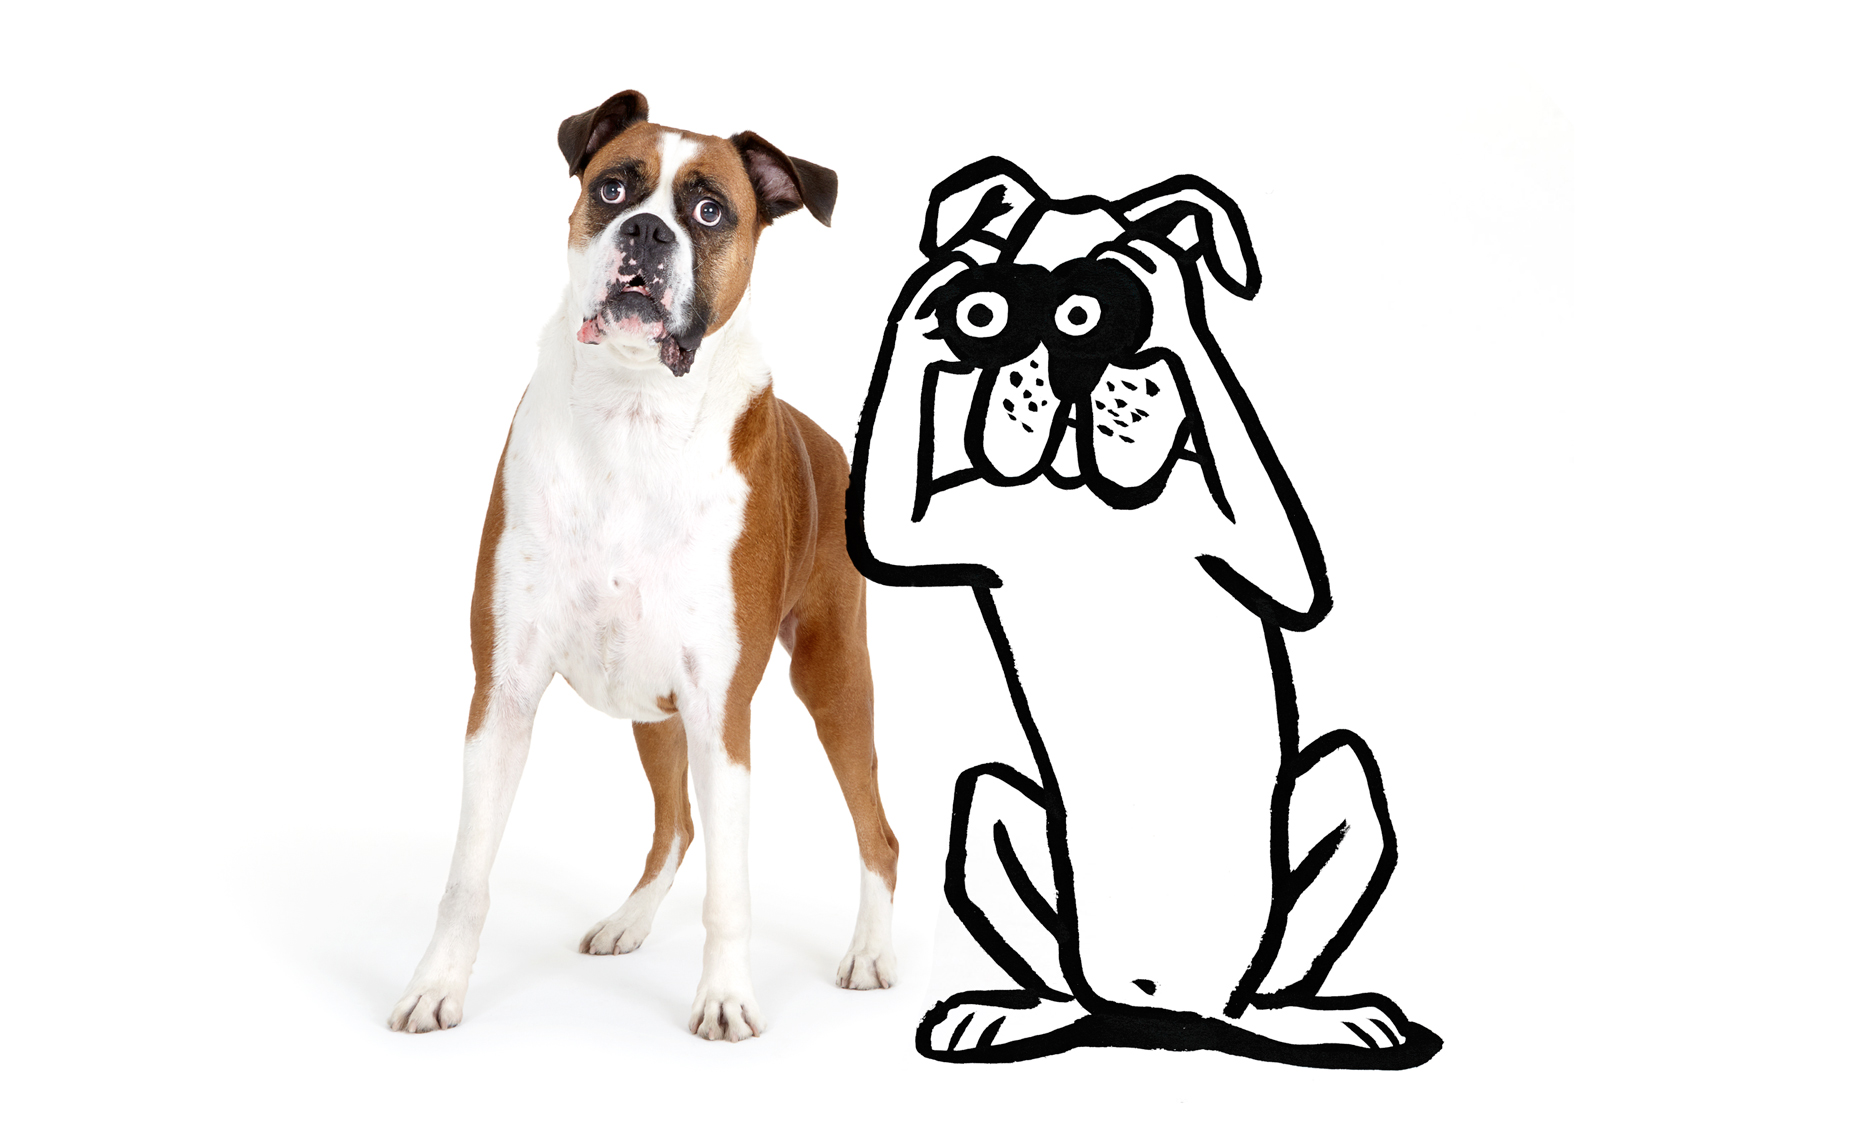 Surprised Boxer with illustration